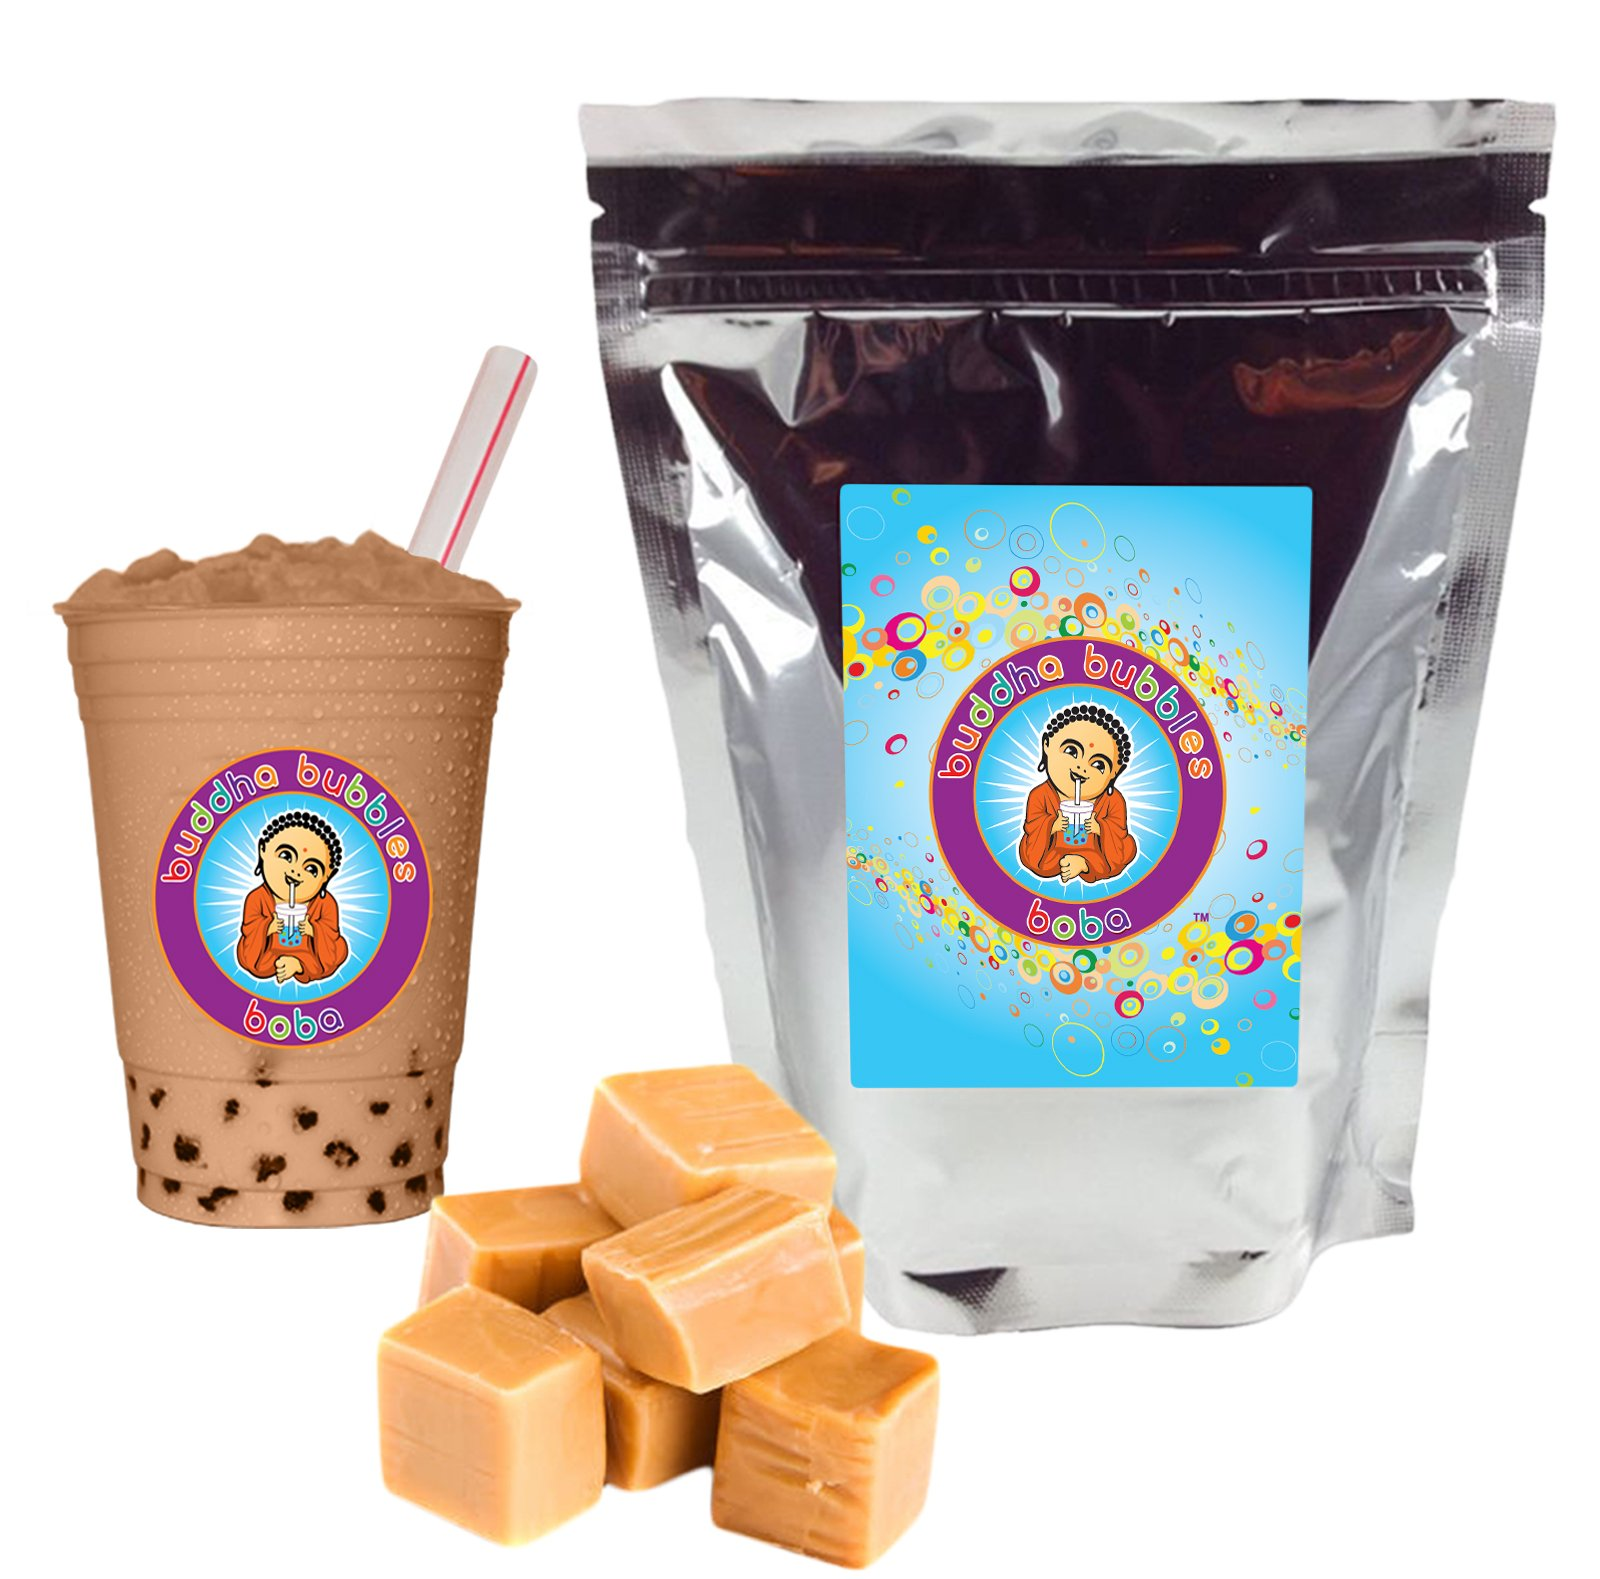 Caramel Frapp Boba / Bubble Tea Drink Mix Powder By Buddha Bubbles Boba 1 Kilo (2.2 Pounds) | (1000 Grams) by Buddha Bubbles Boba